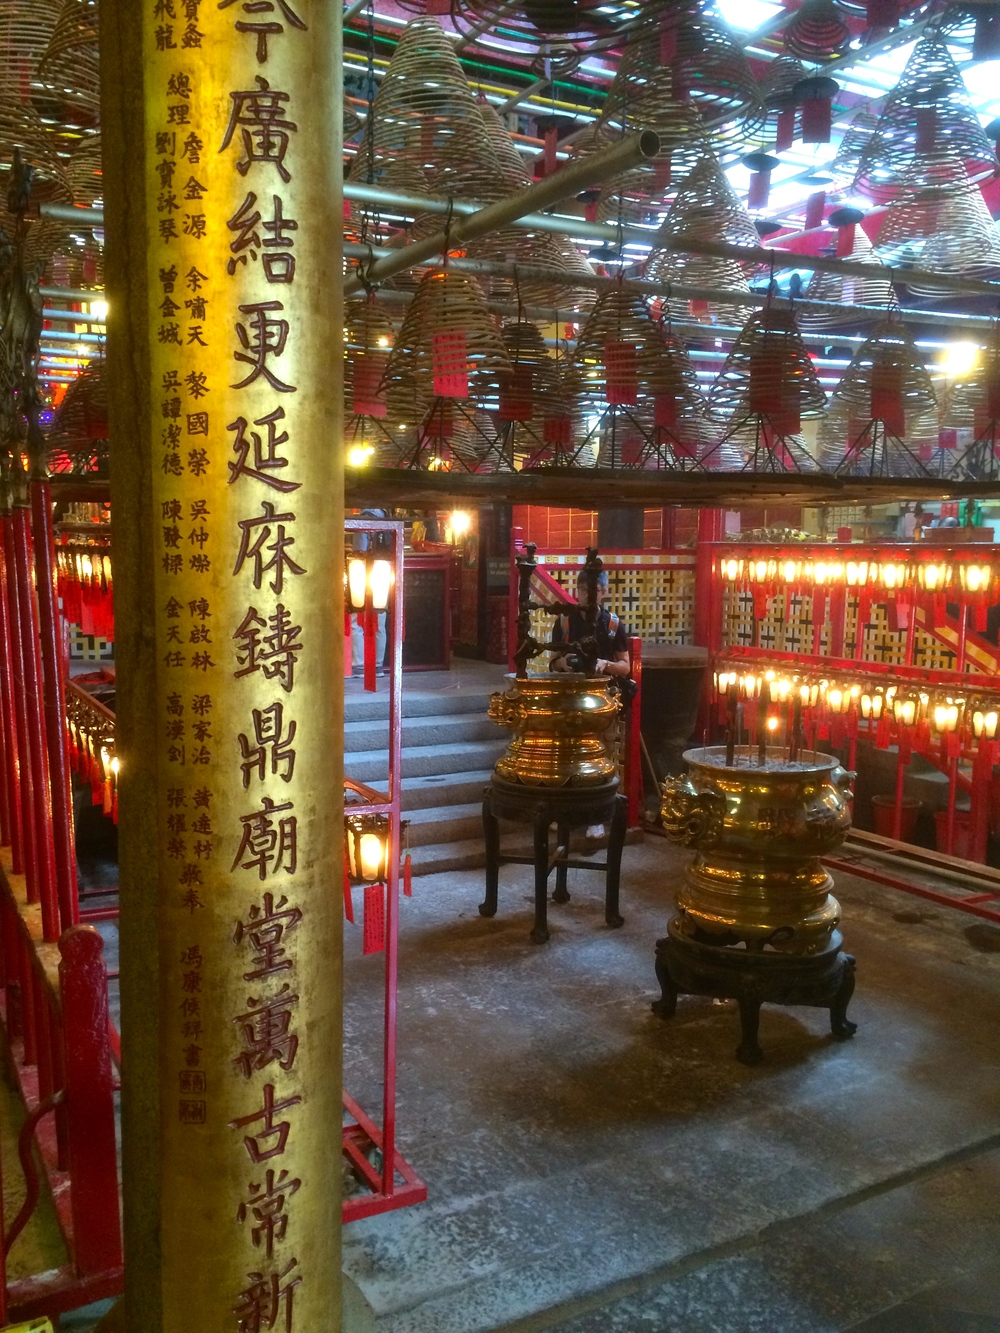 inside the temple.  those are coils of incense hanging overhead.